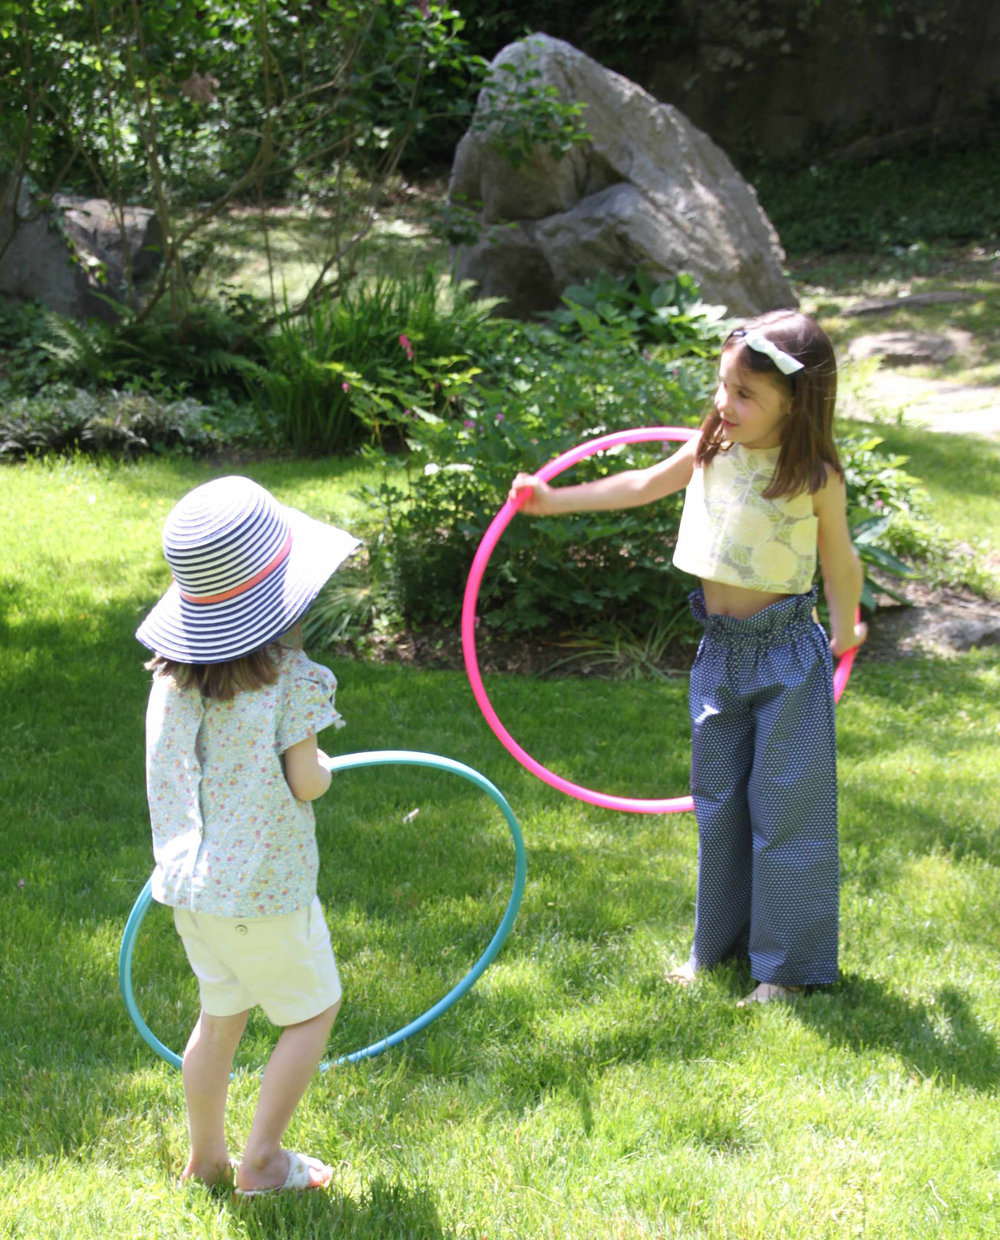 Cropped-Hula-Hoop-3-Low-Res.jpg